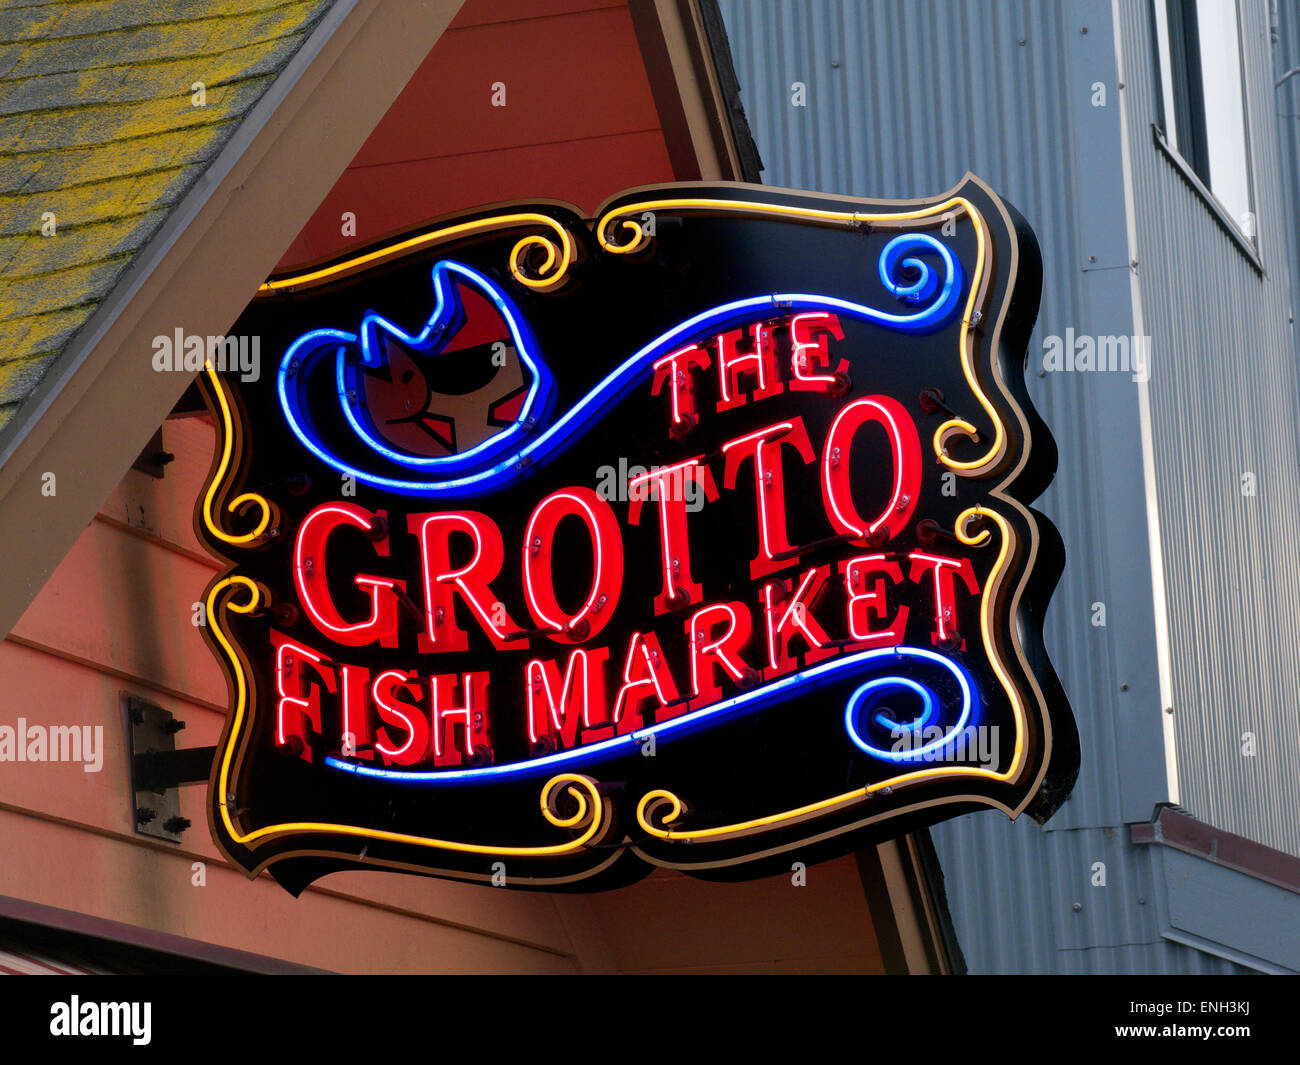 Neon sign for The Grotto fish market restaurant on Monterey Pier Stock Photo, Royalty Free Image ...